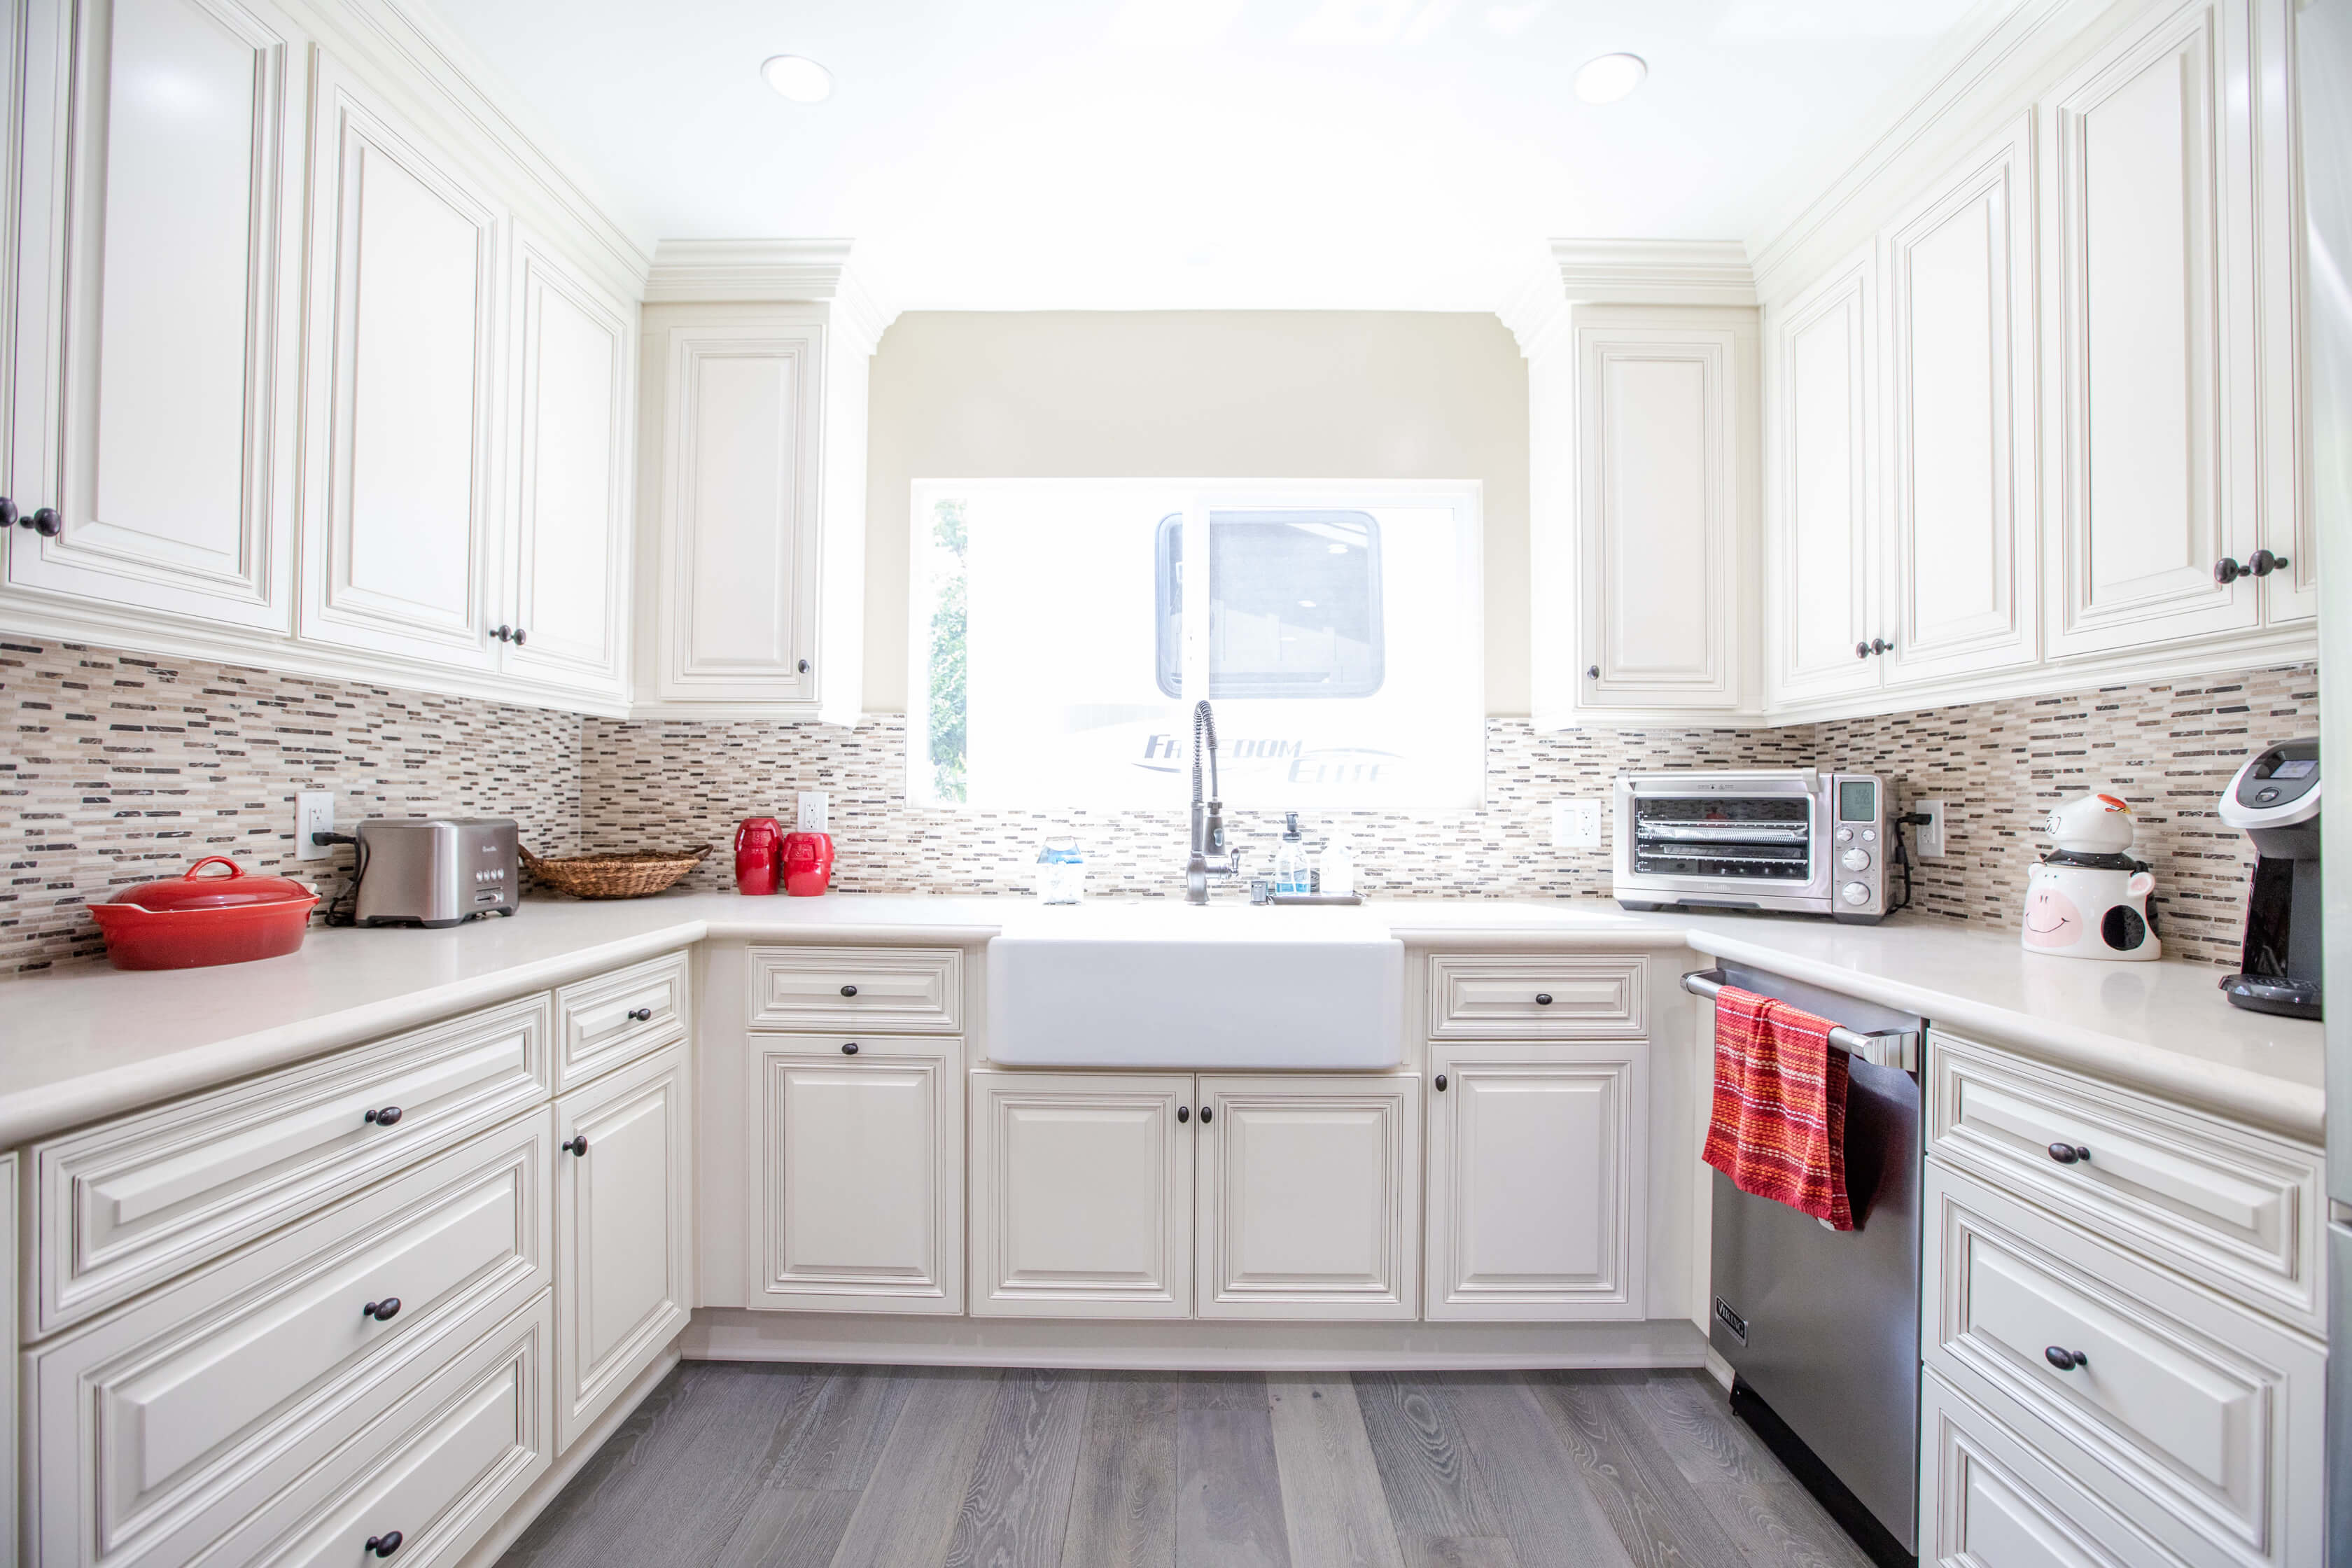 Kitchen Remodel with Antique White and Mosaic Backsplash in Sherman Oaks CA